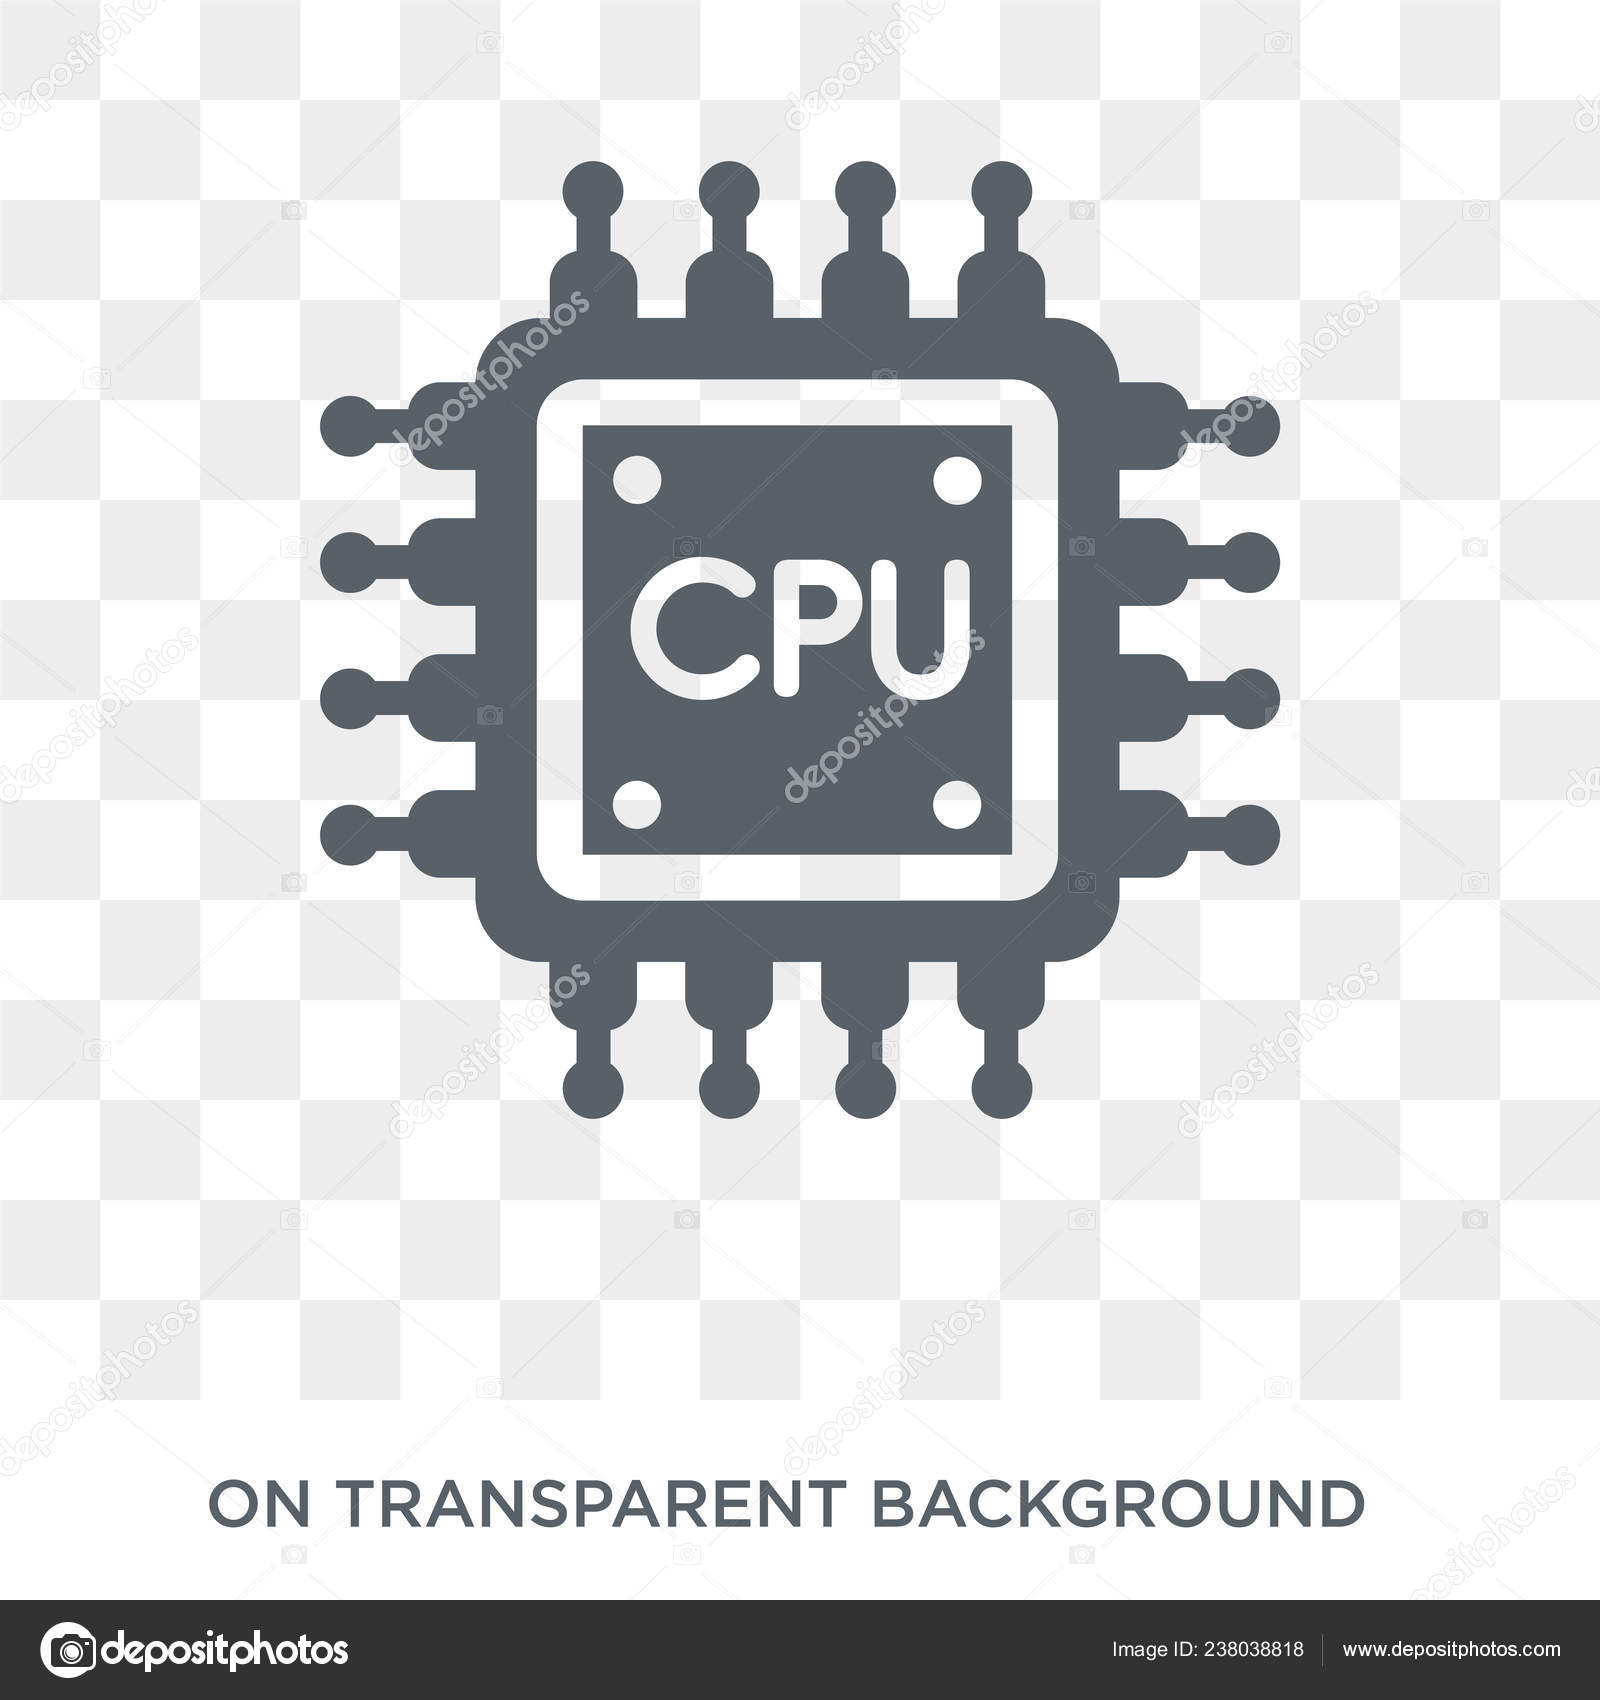 cpu icon trendy flat vector cpu icon transparent background artificial stock vector c tvectoricons 238038818 https depositphotos com 238038818 stock illustration cpu icon trendy flat vector html